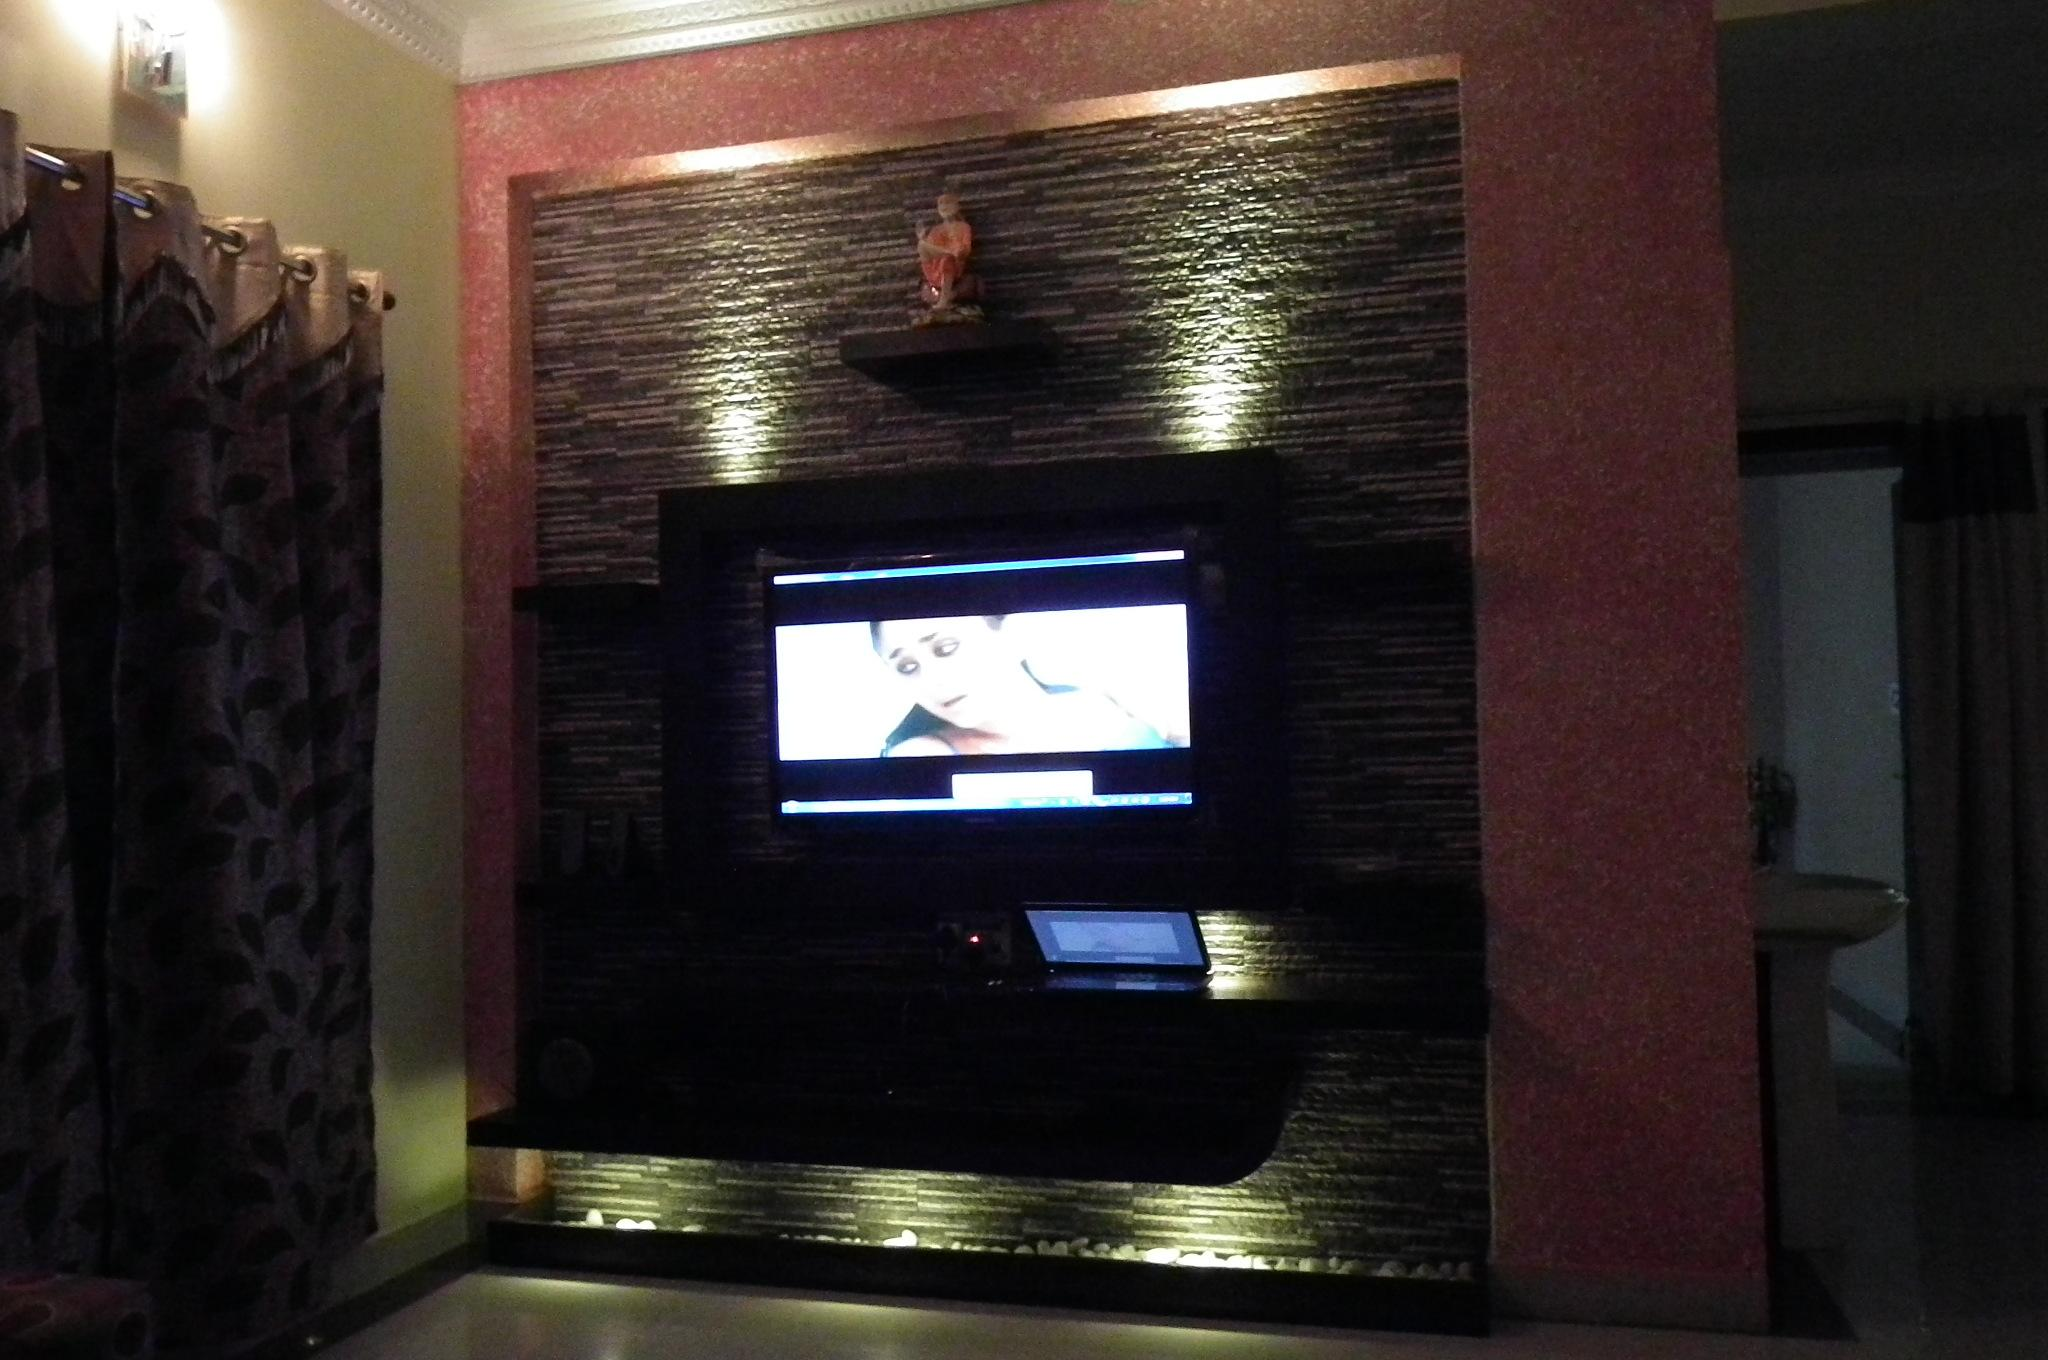 How High To Mount Tv On Wall In Bedroom Lcd Tv Wall With Dark Color Stone Cladding Gharexpert